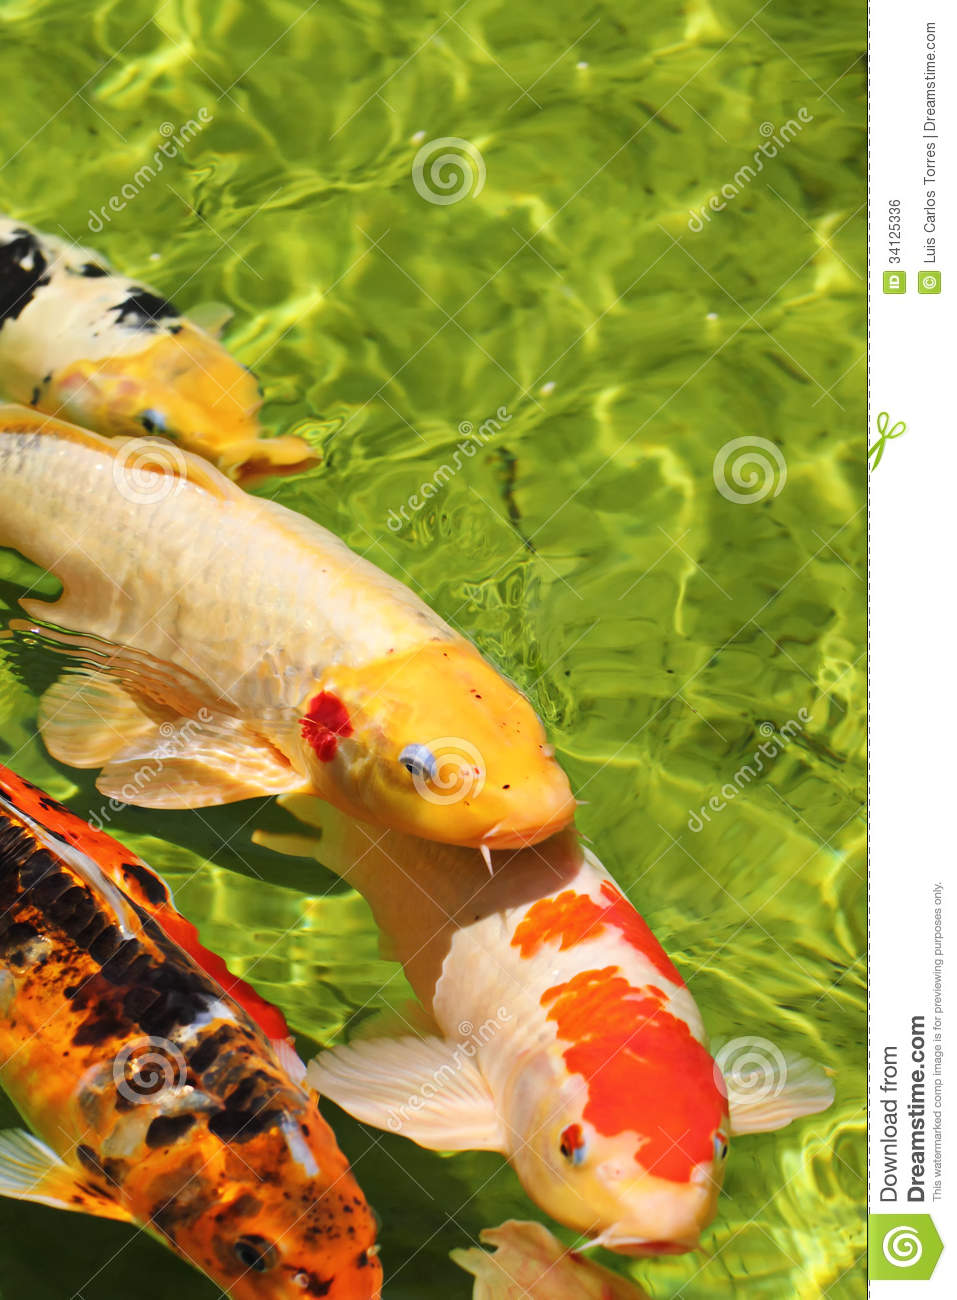 Colorful koi fishes in water royalty free stock image for Colorful pond fish